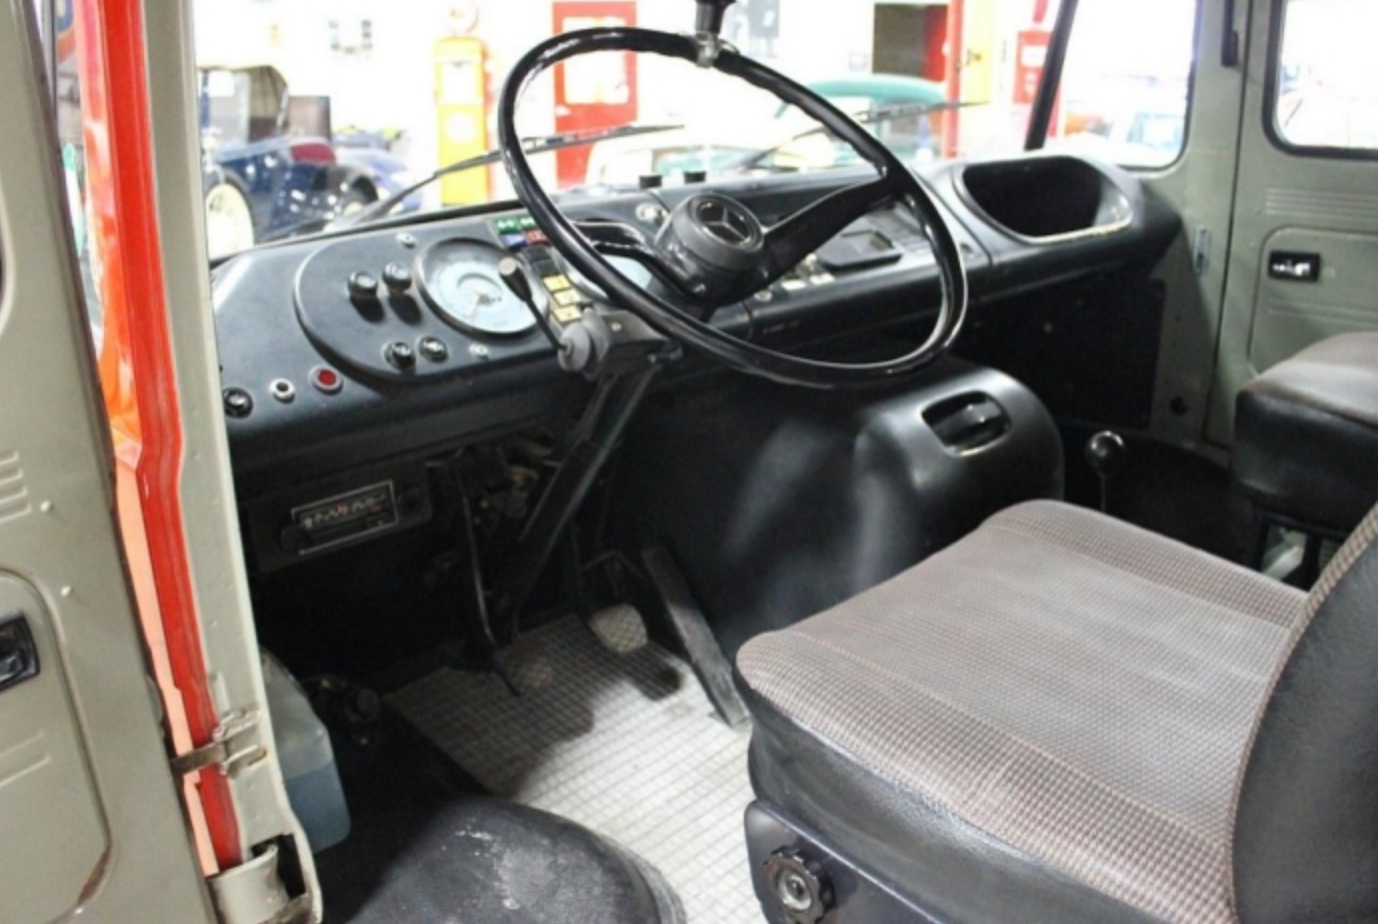 0a15b79beb Here is essentially a once in a lifetime opportunity to own (and operate)  and authentic piece of German history. This 1974 Mercedes-Benz 408 Quad Cag  was ...